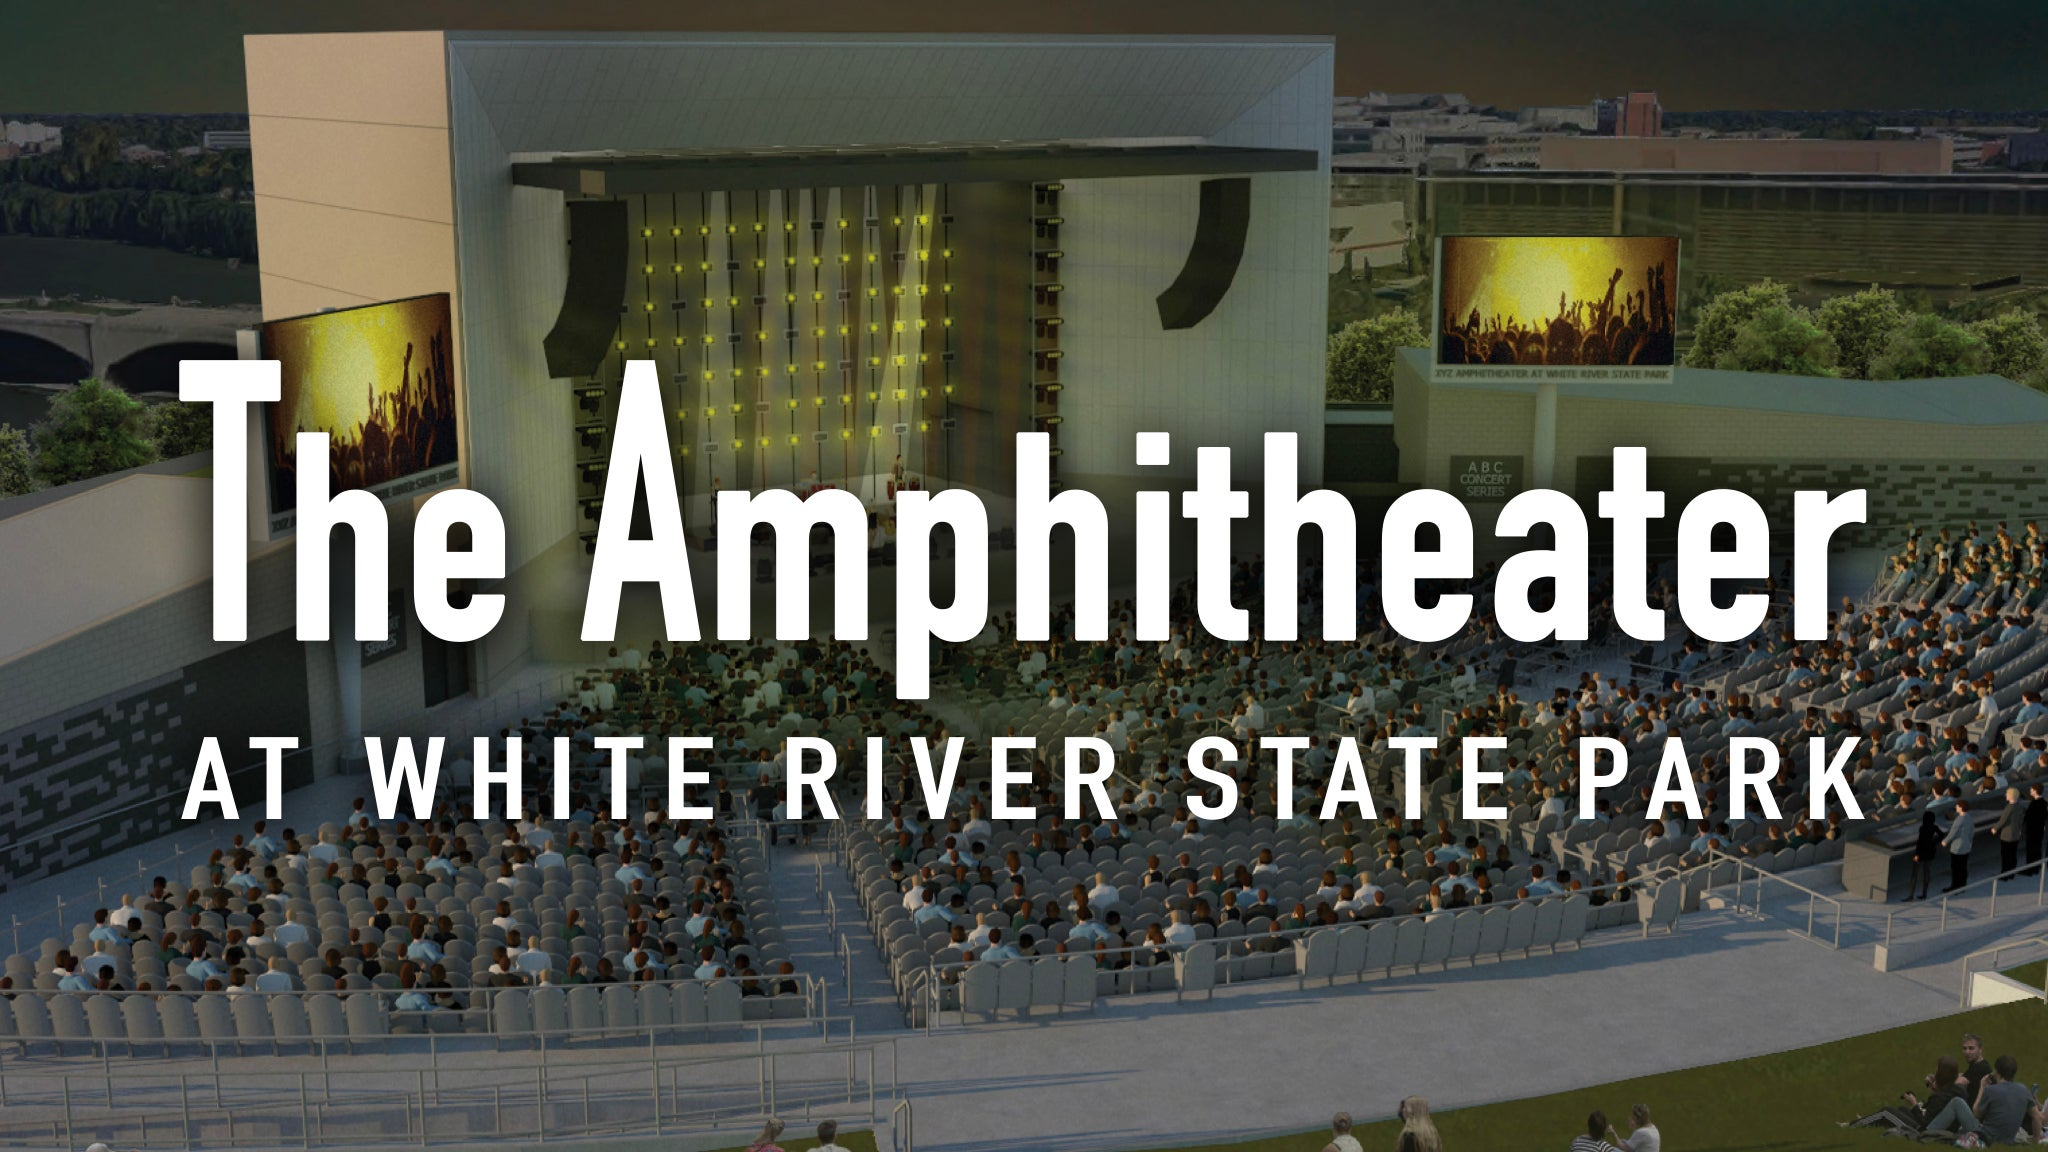 Amphitheater At White River State Park